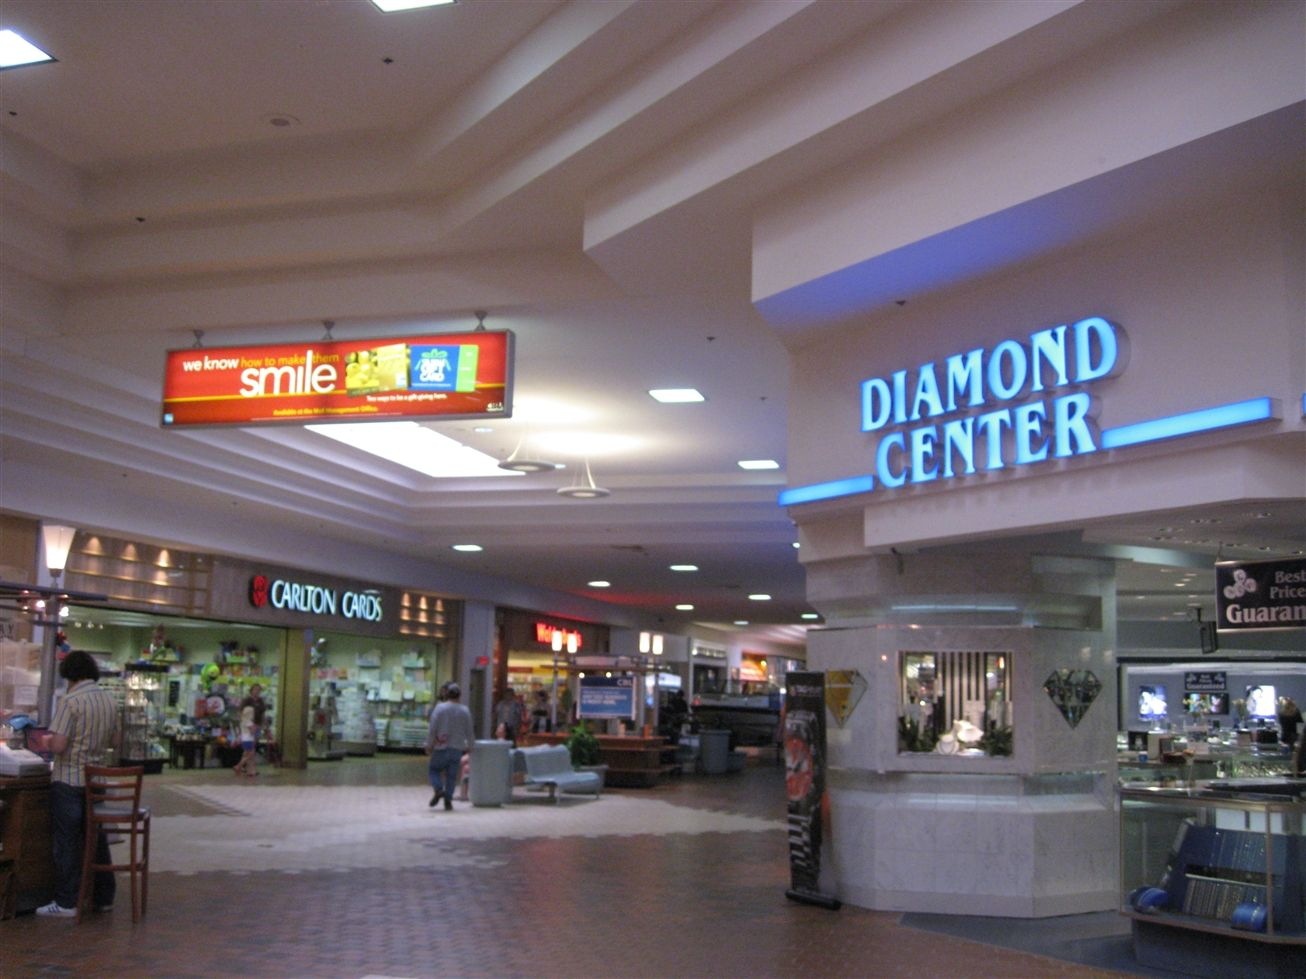 Mexican Restaurants In Chicago Ridge Mall